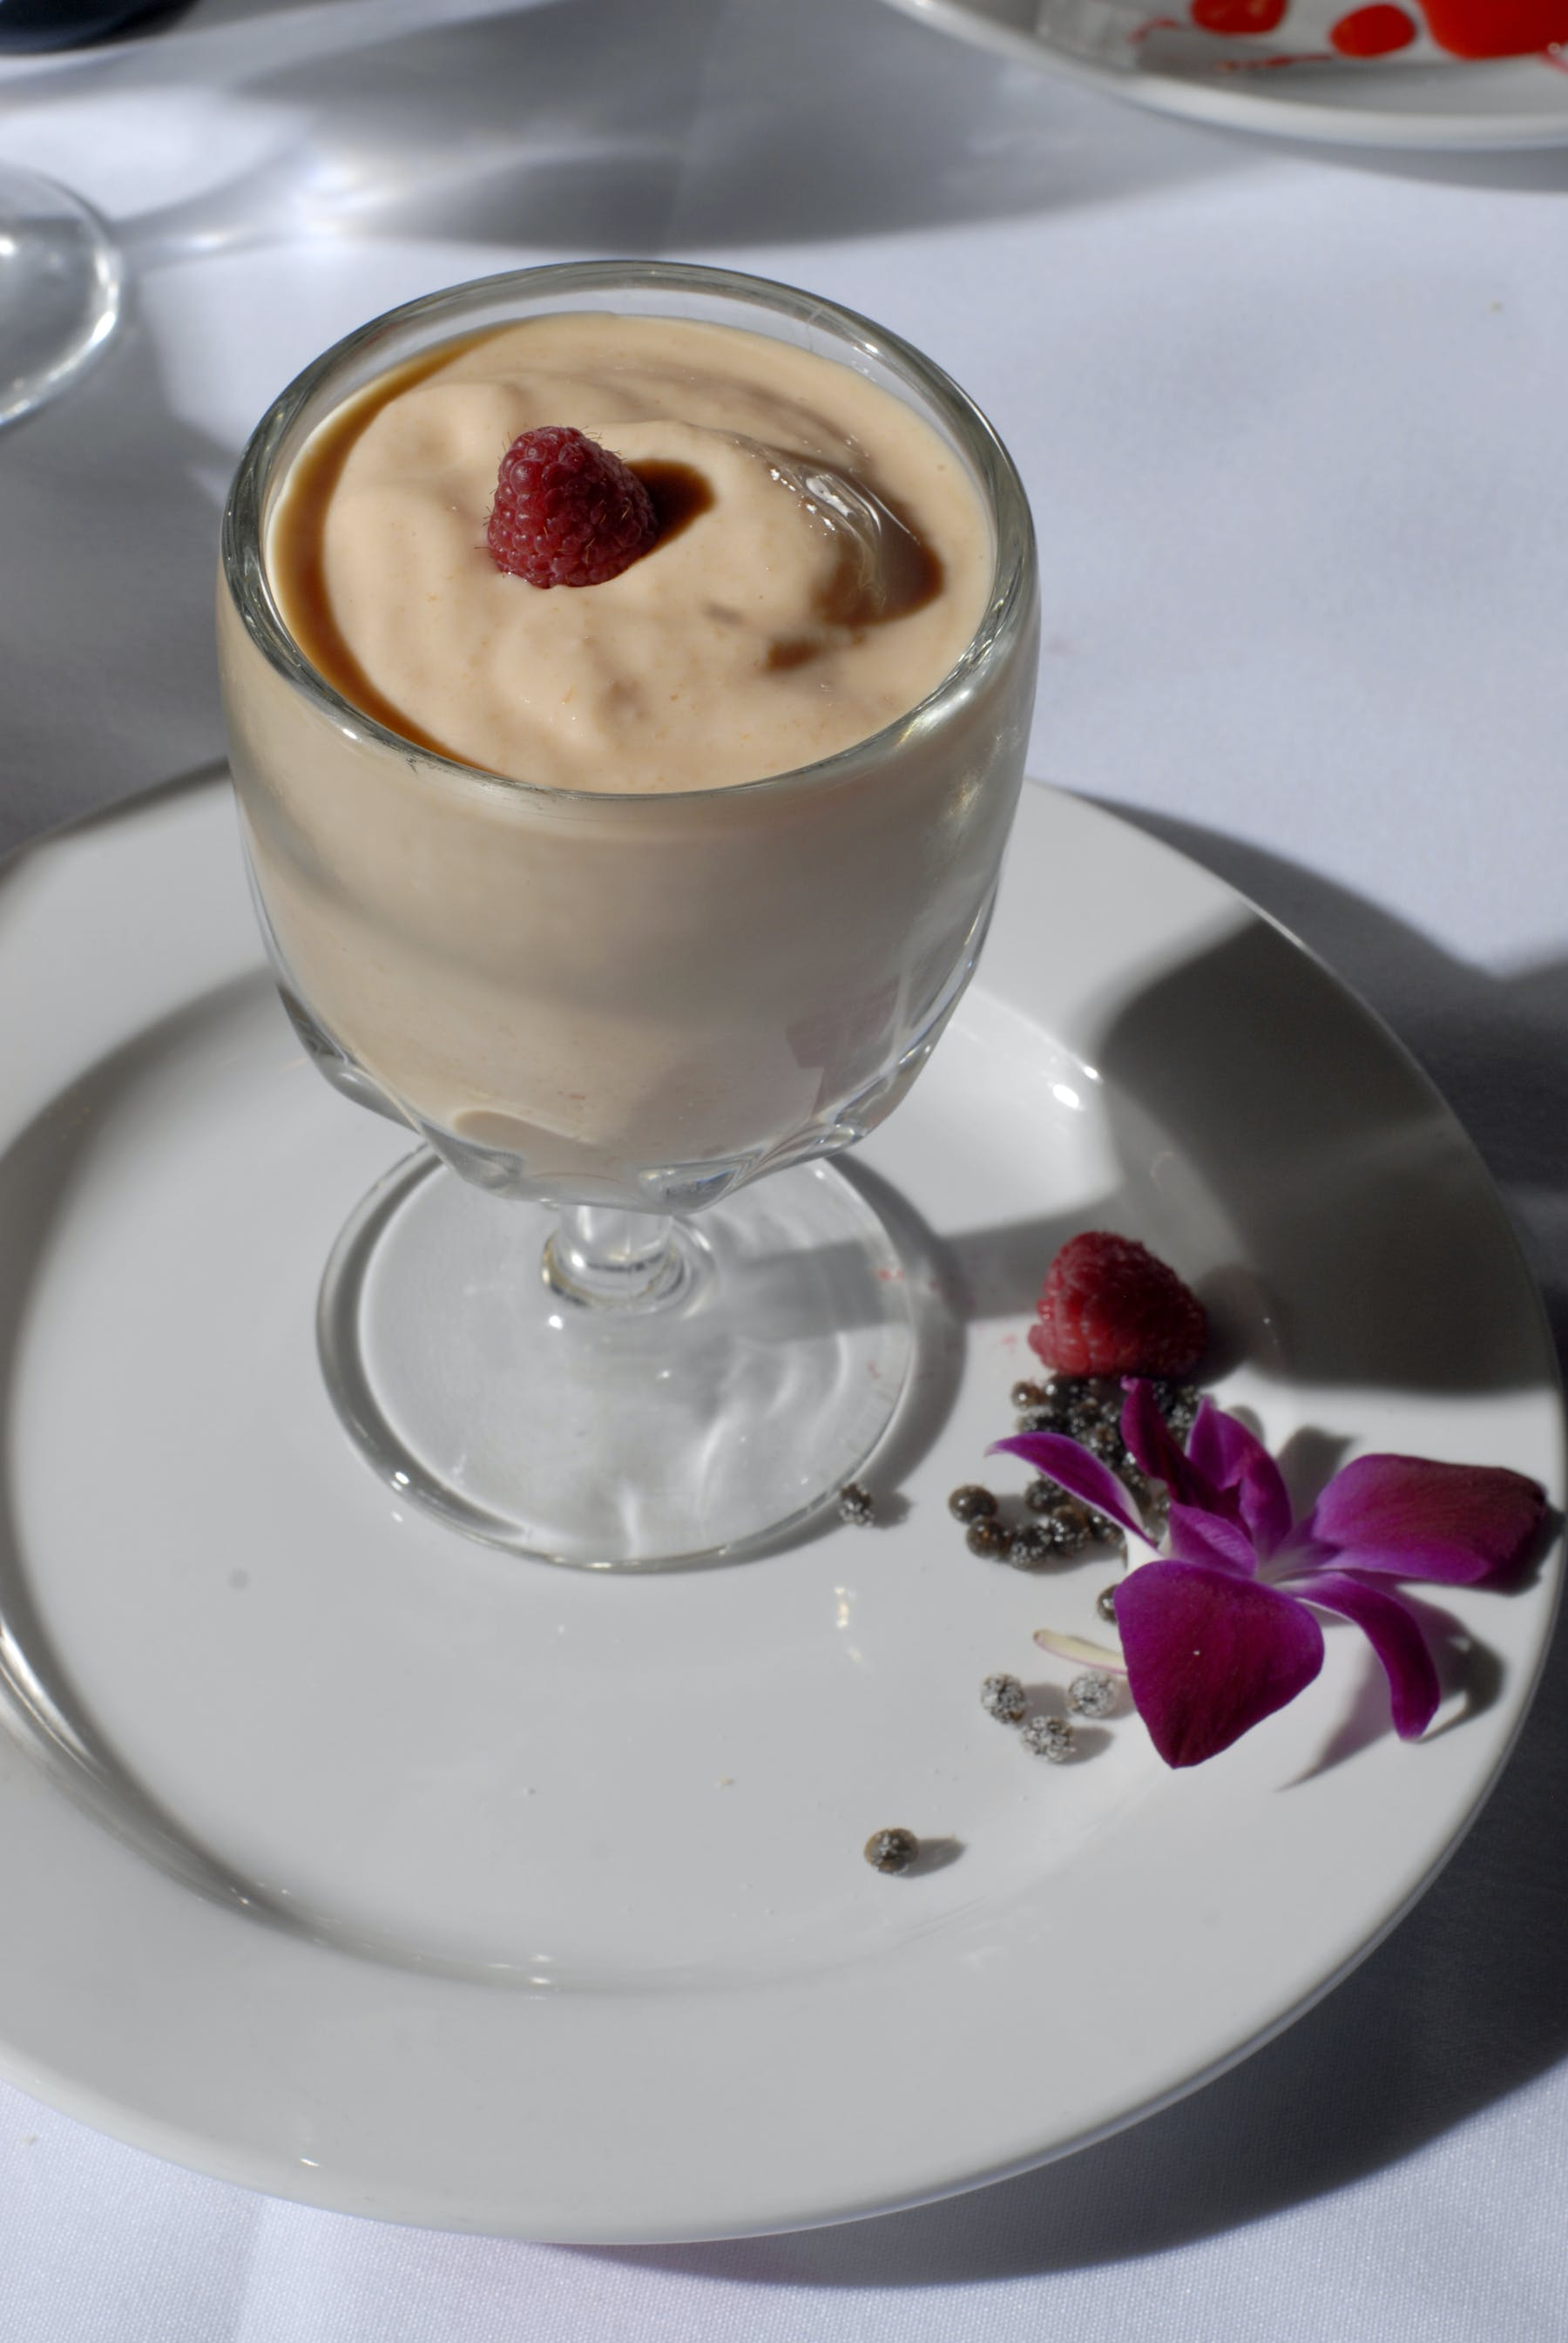 a dessert on a plate next to a cup of coffee